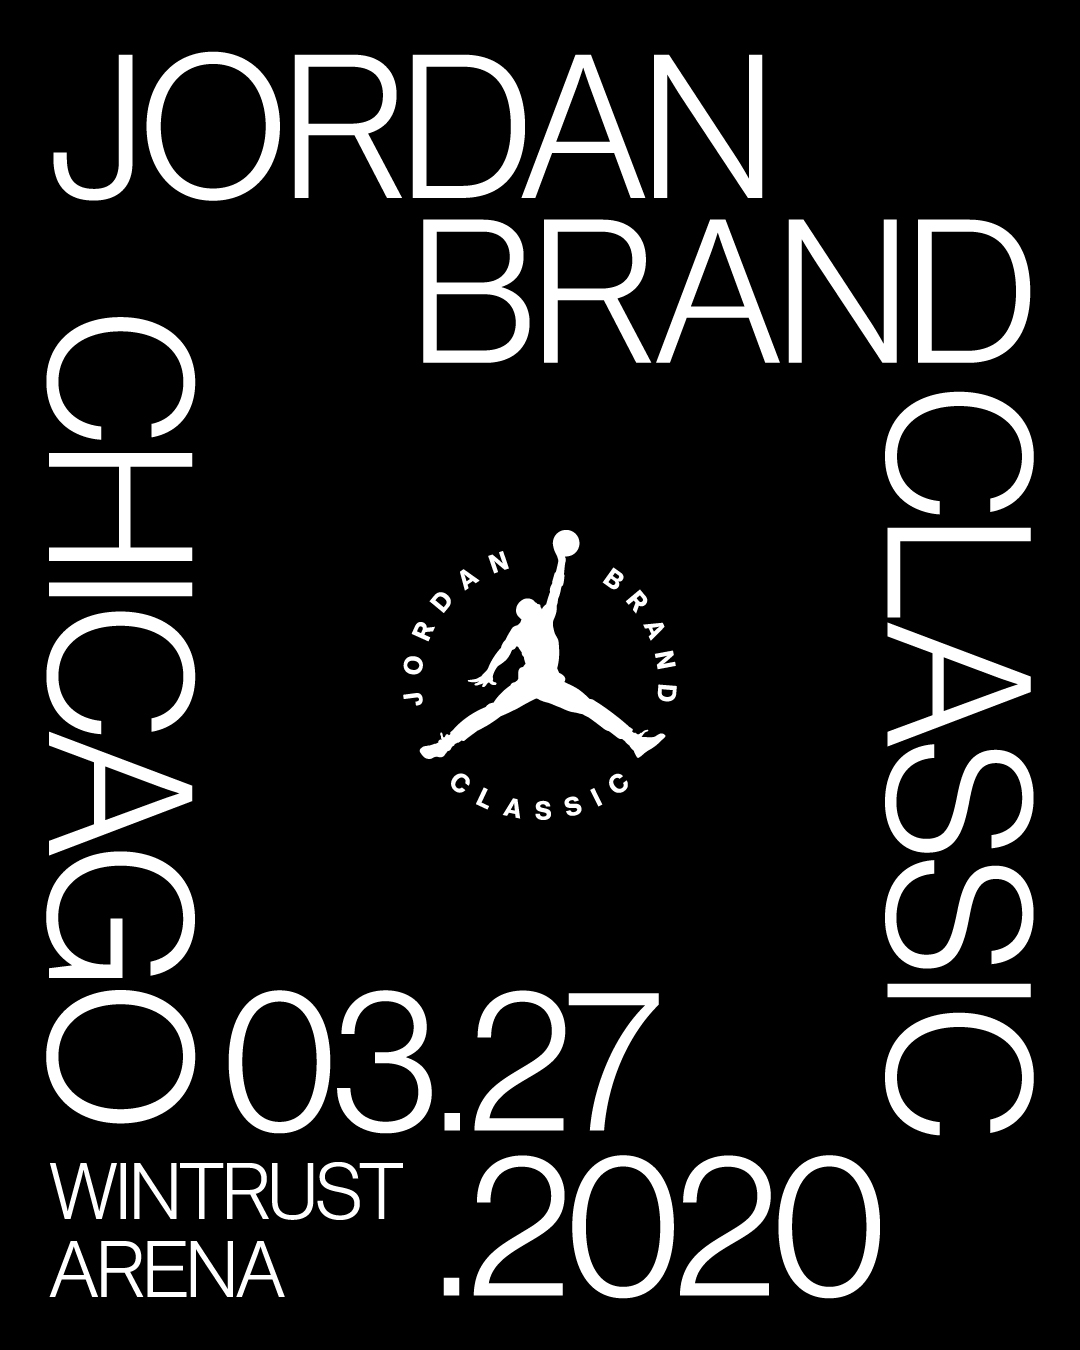 The Jordan Brand Classic Set to Come to Chicago for the First Time